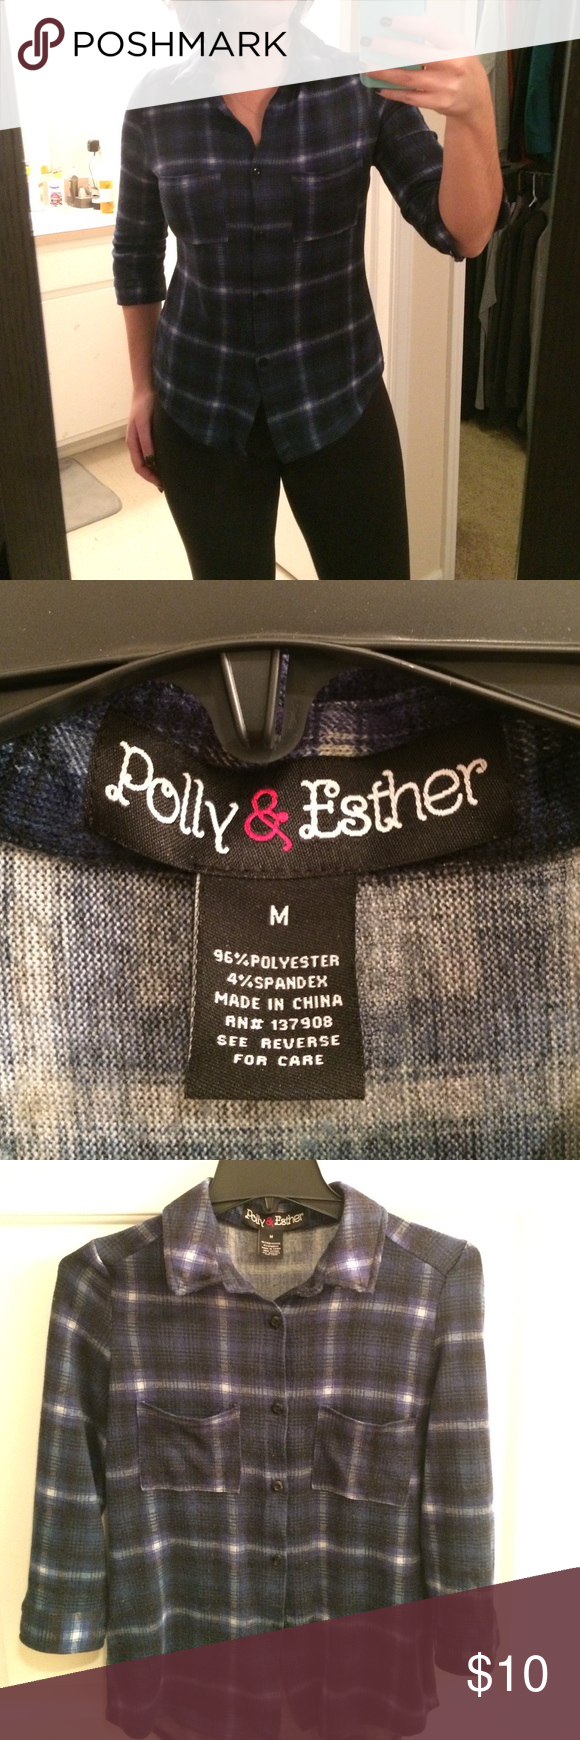 Polly & Esther juniors button up Stretchy, soft button up. Fitted style with a pocket on either breast. Has a snug fit for a medium, but the shirt has stretch to it and is still comfortable. Dark blue plaid. Sleeves are 3/4 Polly & Esther Tops Button Down Shirts